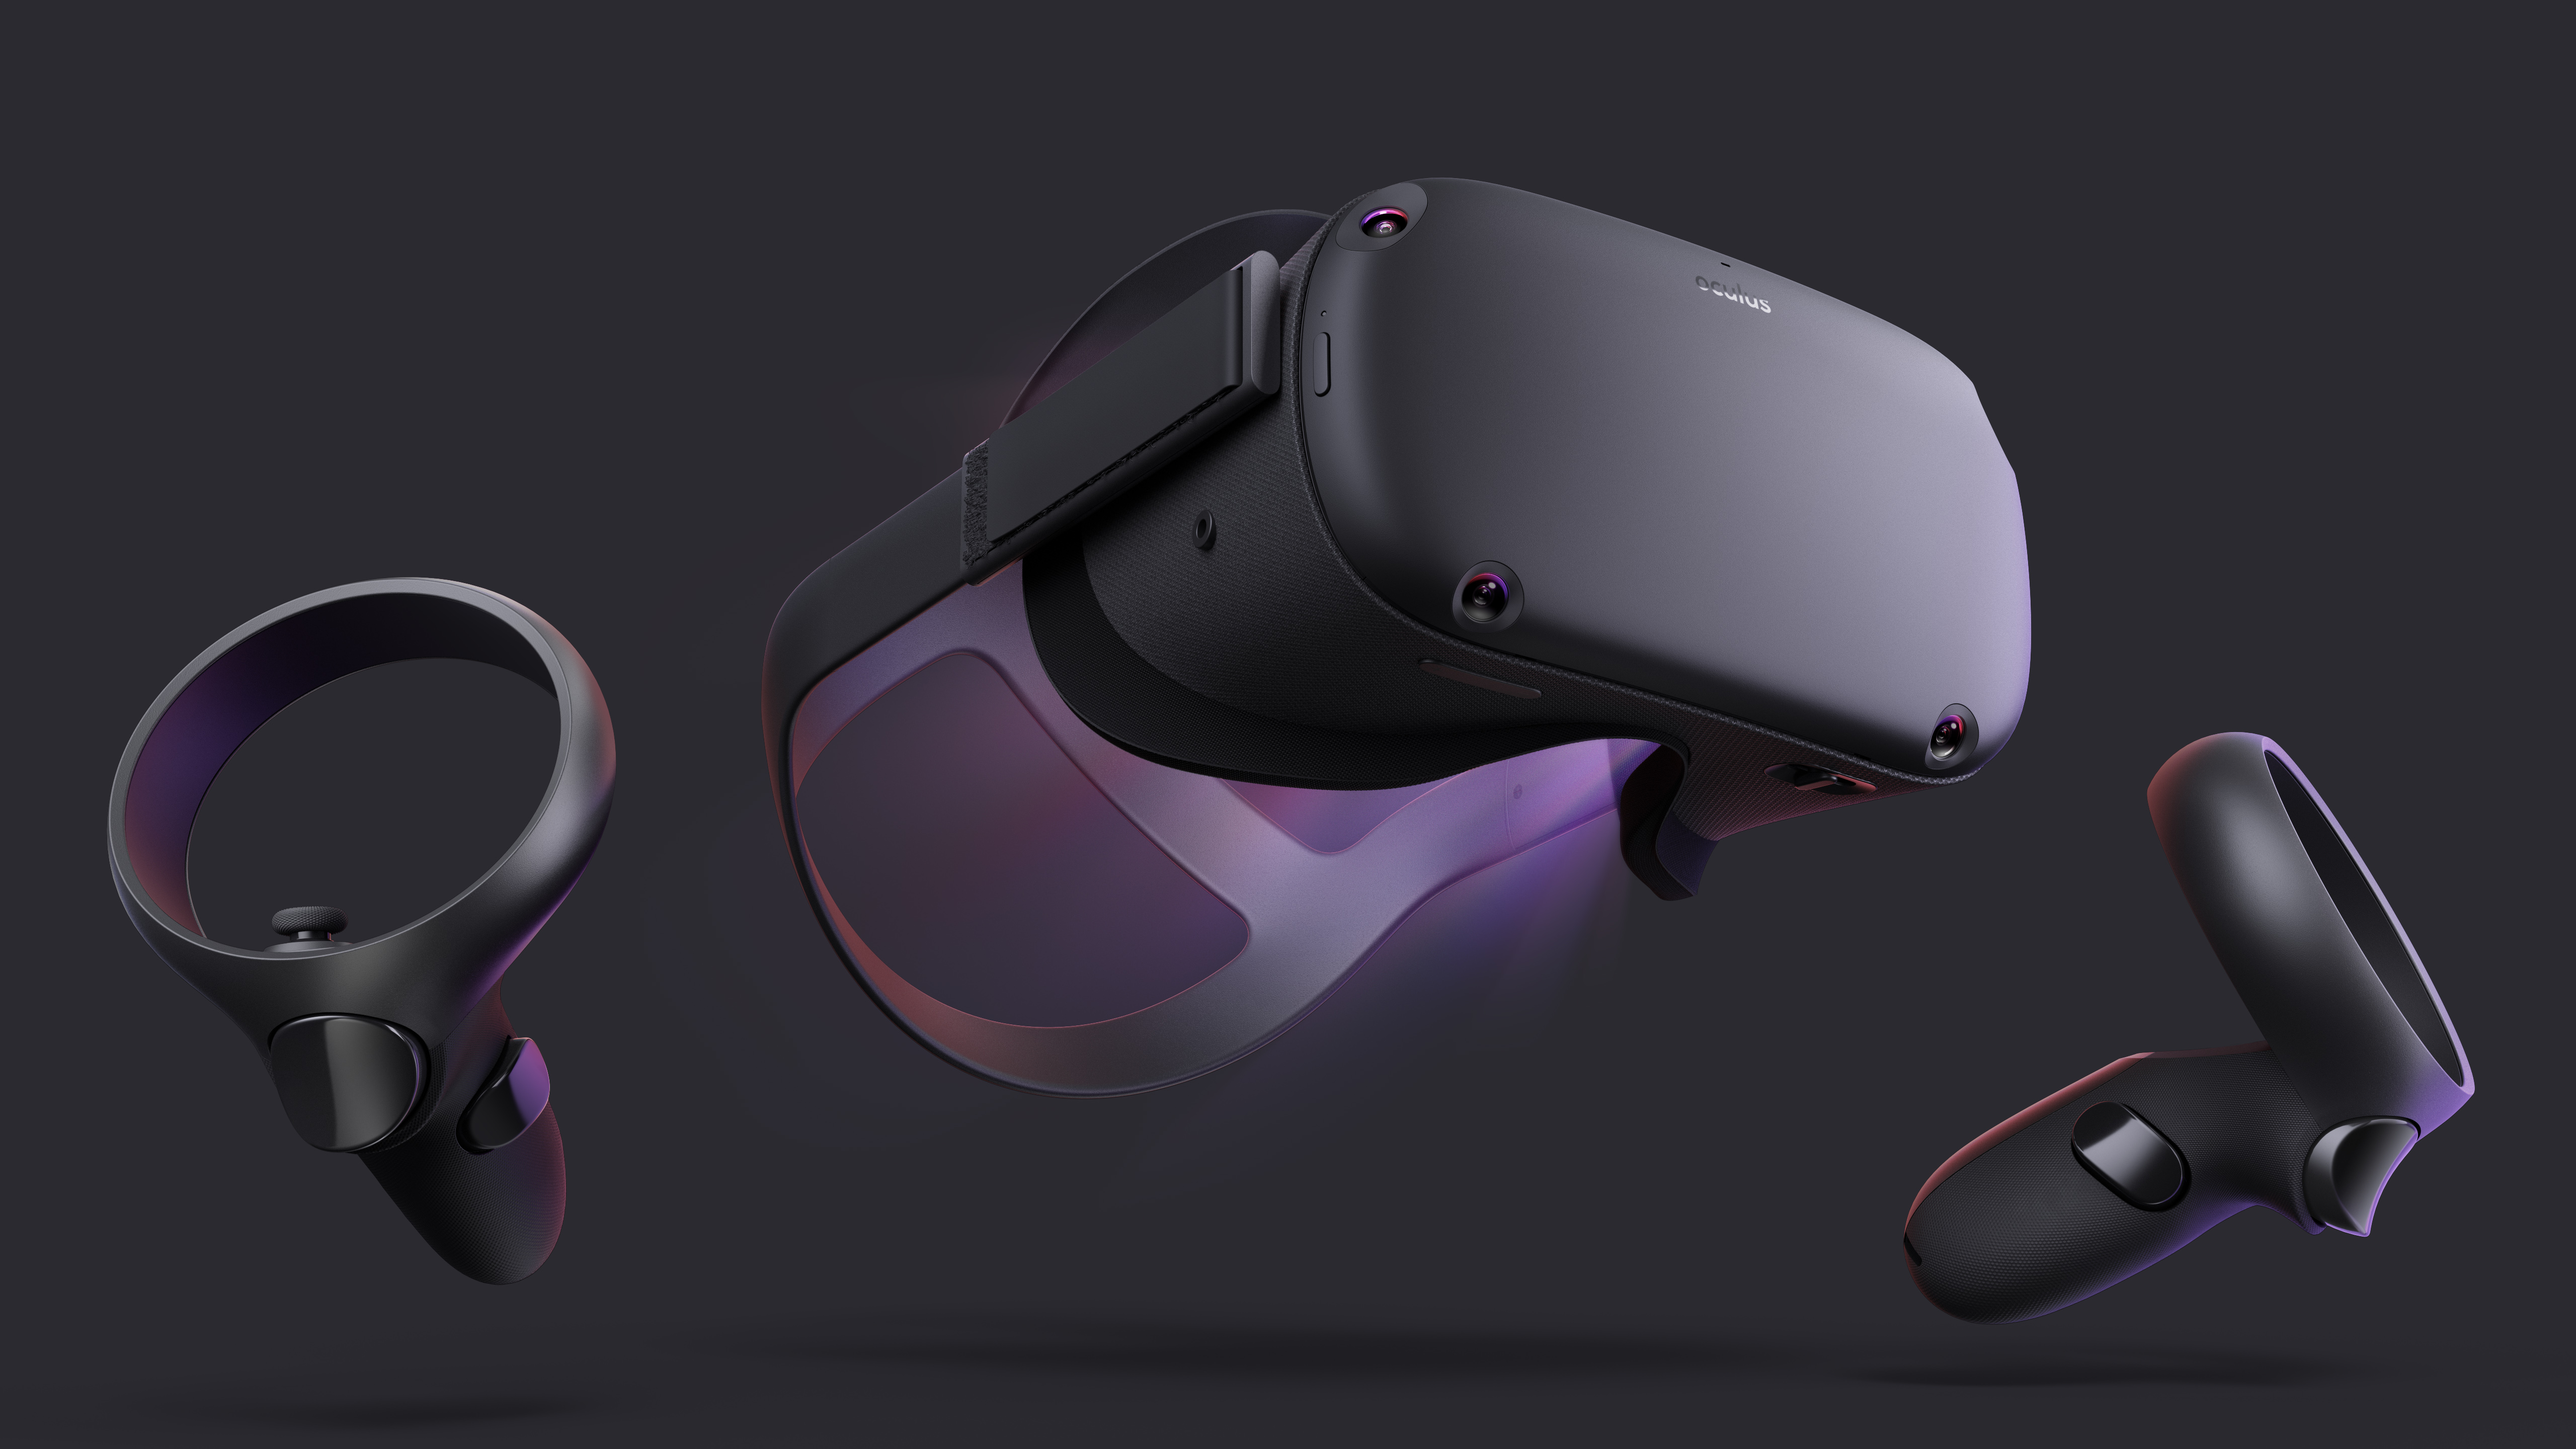 Oculus Quest looks to kill controllers with hand tracking